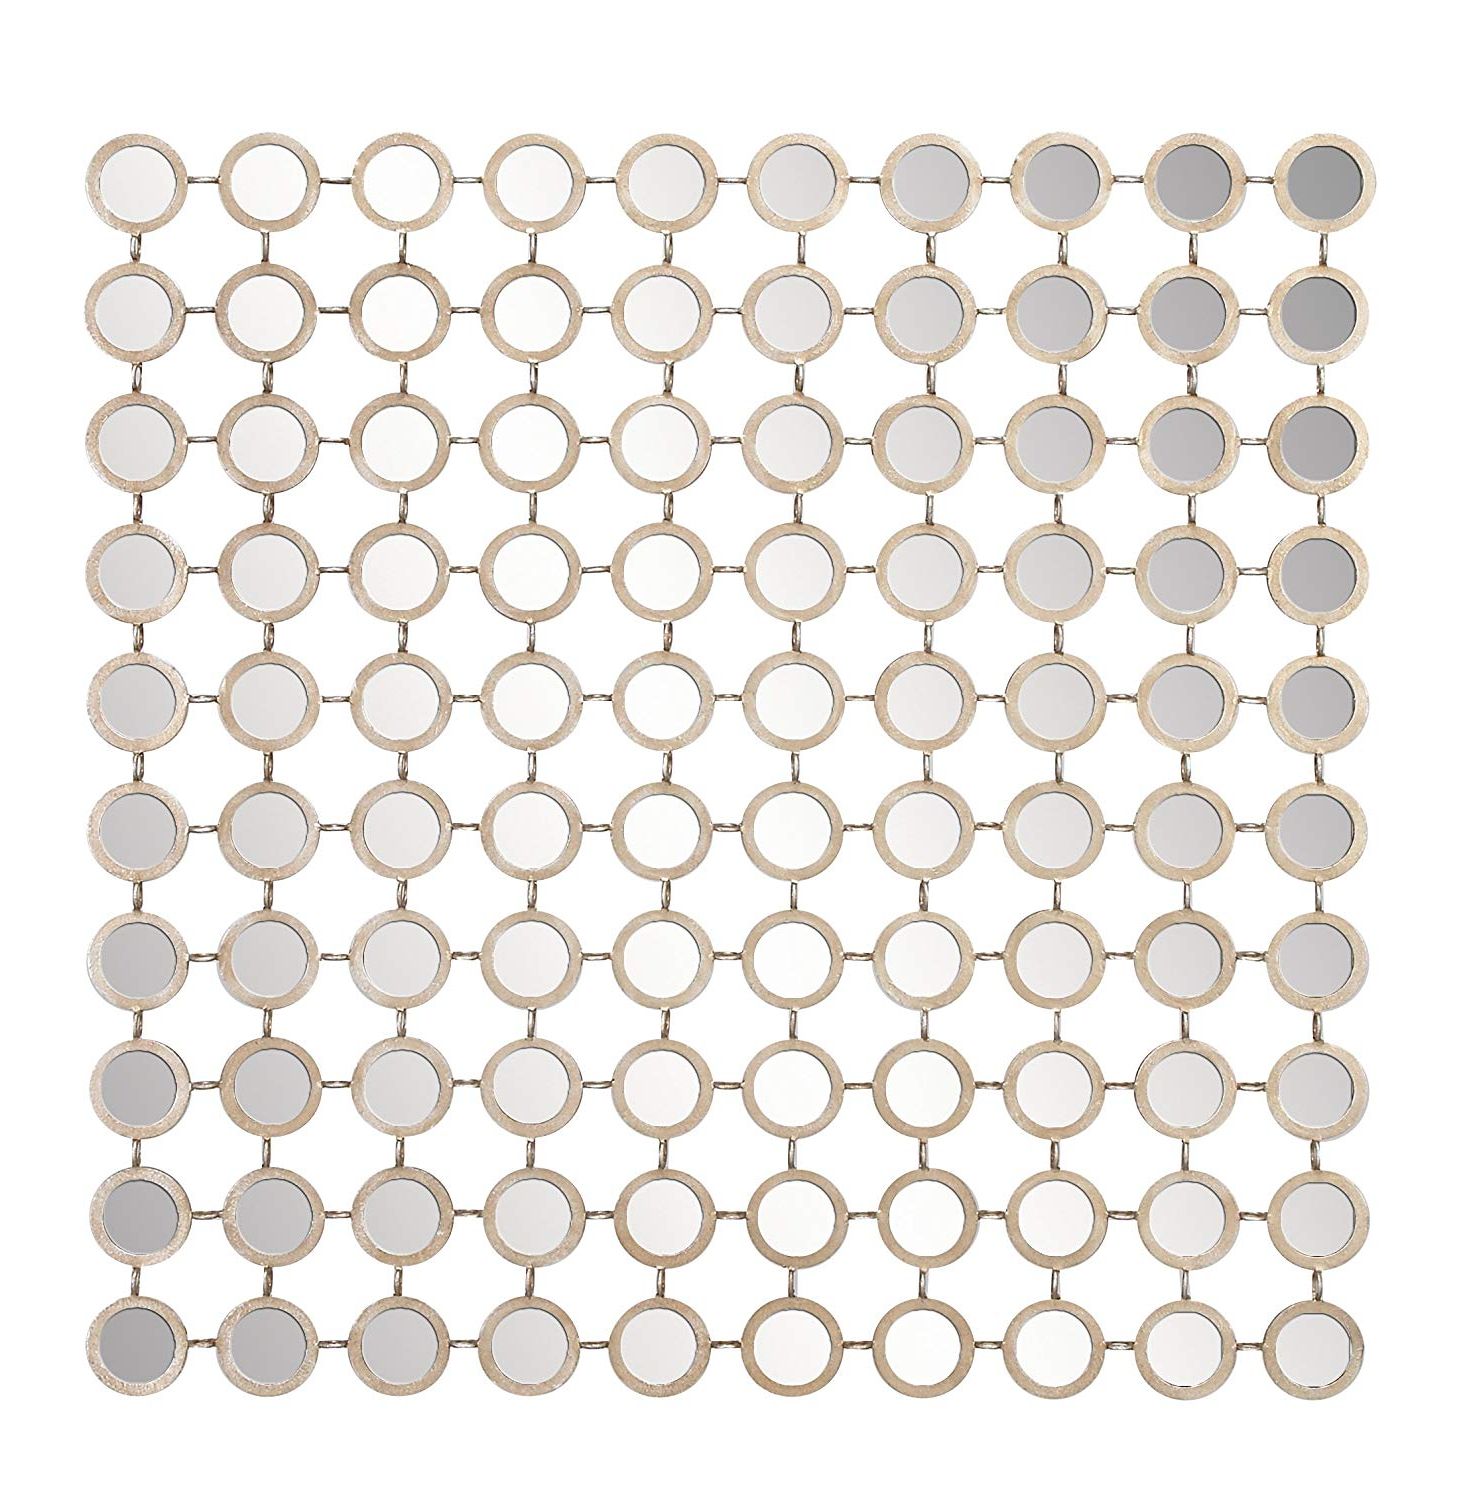 Grid Accent Mirrors For Recent Deco 79 64109 Modern Style Large Square Wall Mirror With Round Gold Metal Mirror Grid, Gold Mirror Wall Decor, Contemporary Wall Mirror, Accent Decor (View 5 of 20)